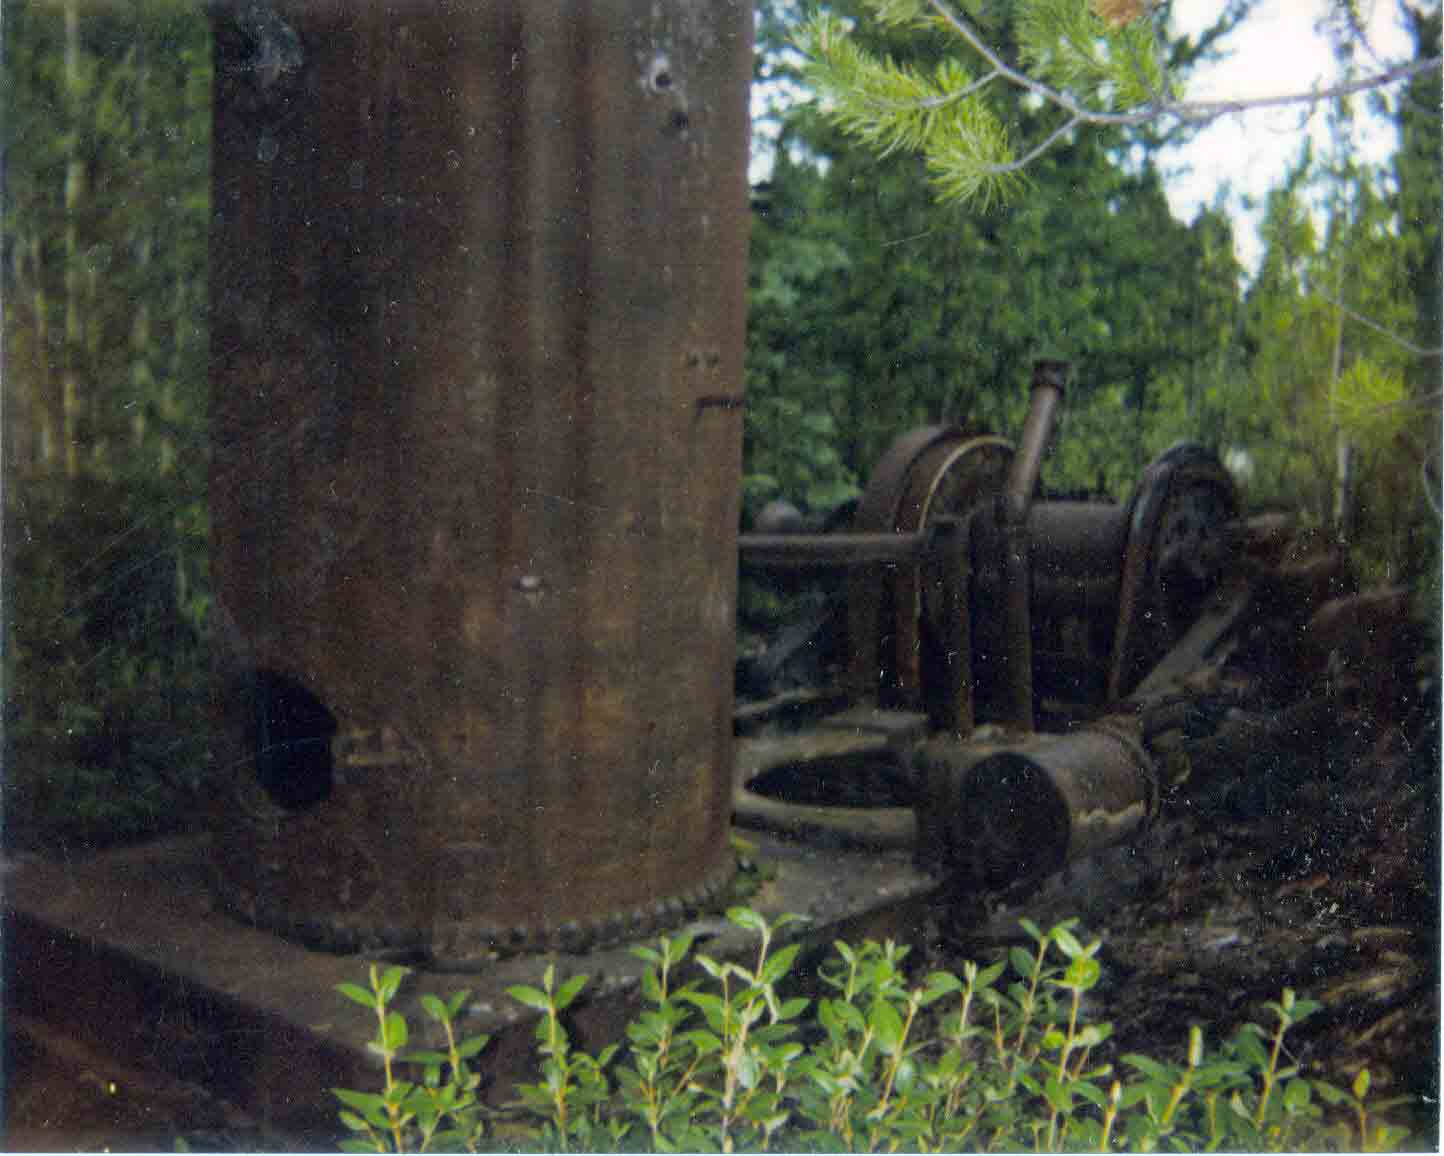 Mckorkells Steam Winch 1996